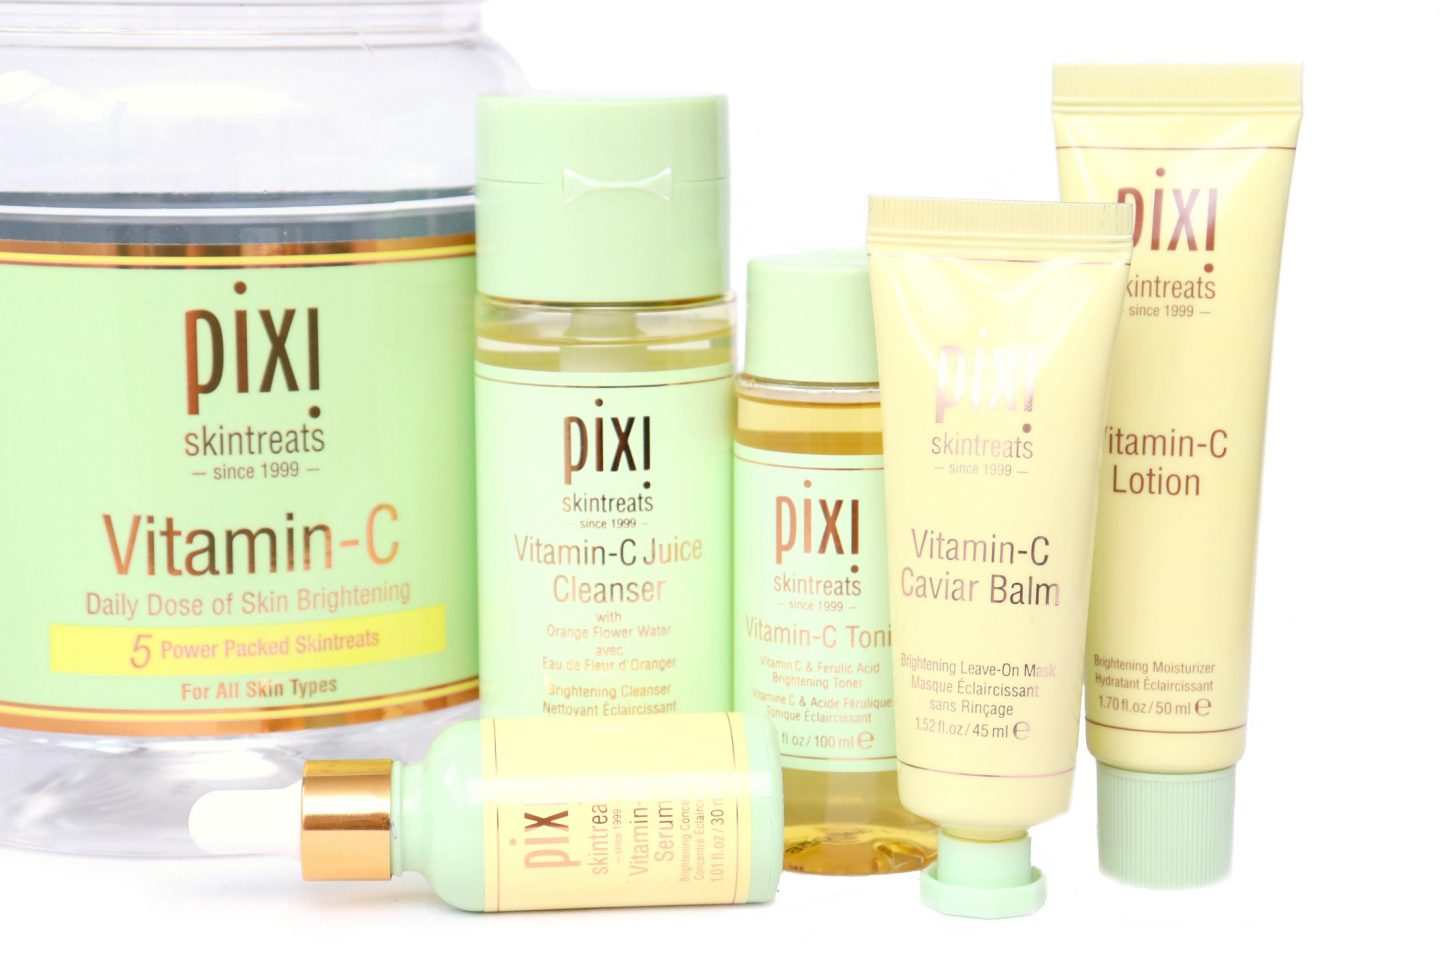 Pixi Vitamin-C Collection Review